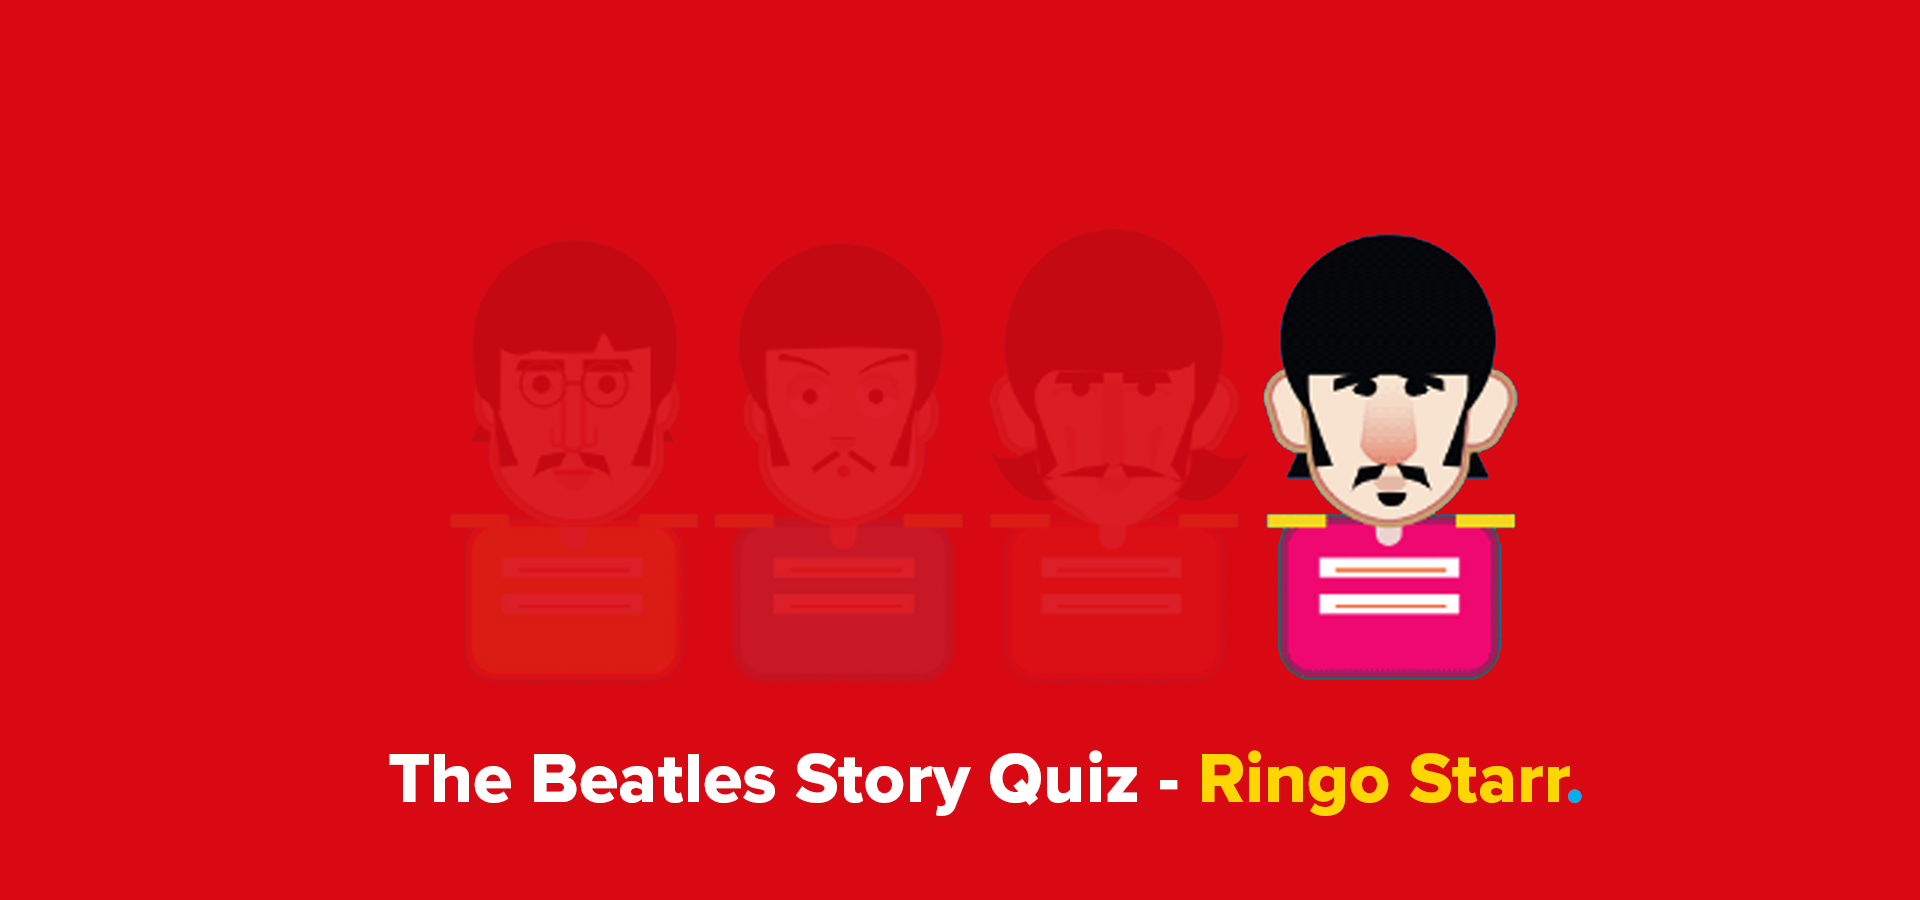 The Ringo Starr Quiz